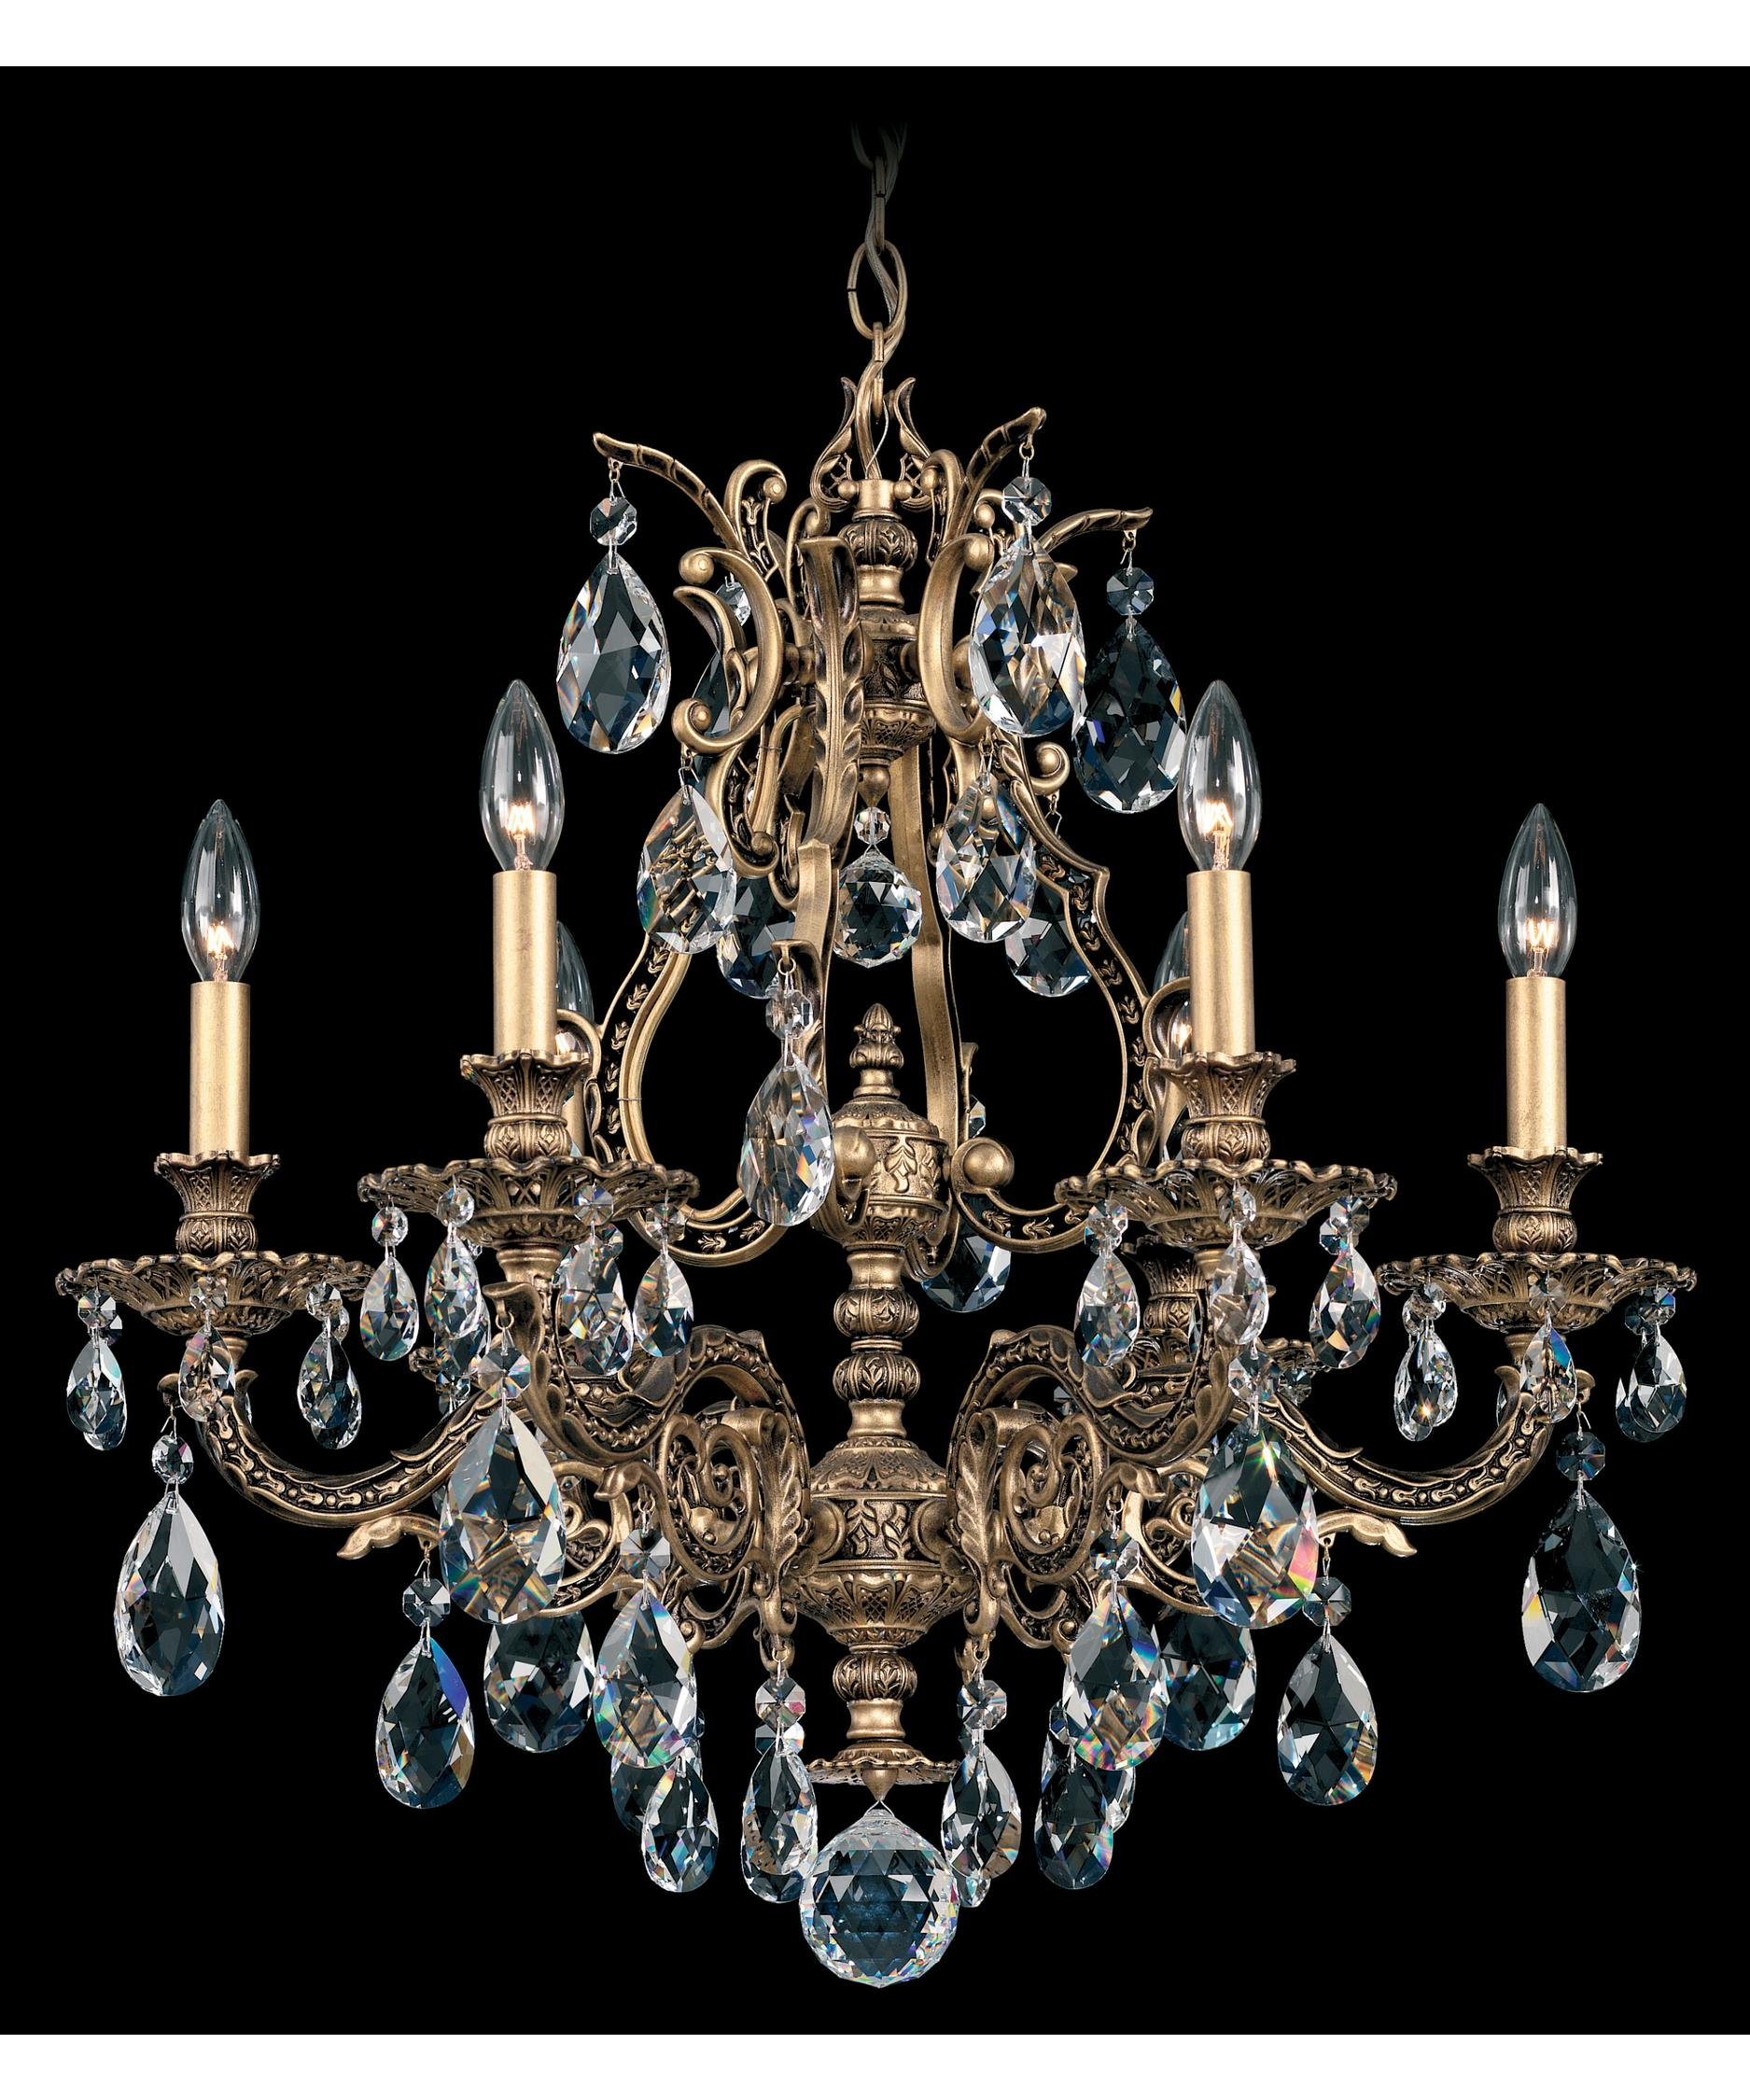 schonbek sophia 24 inch wide 6 light chandelier capitol lighting - Schonbek Lighting